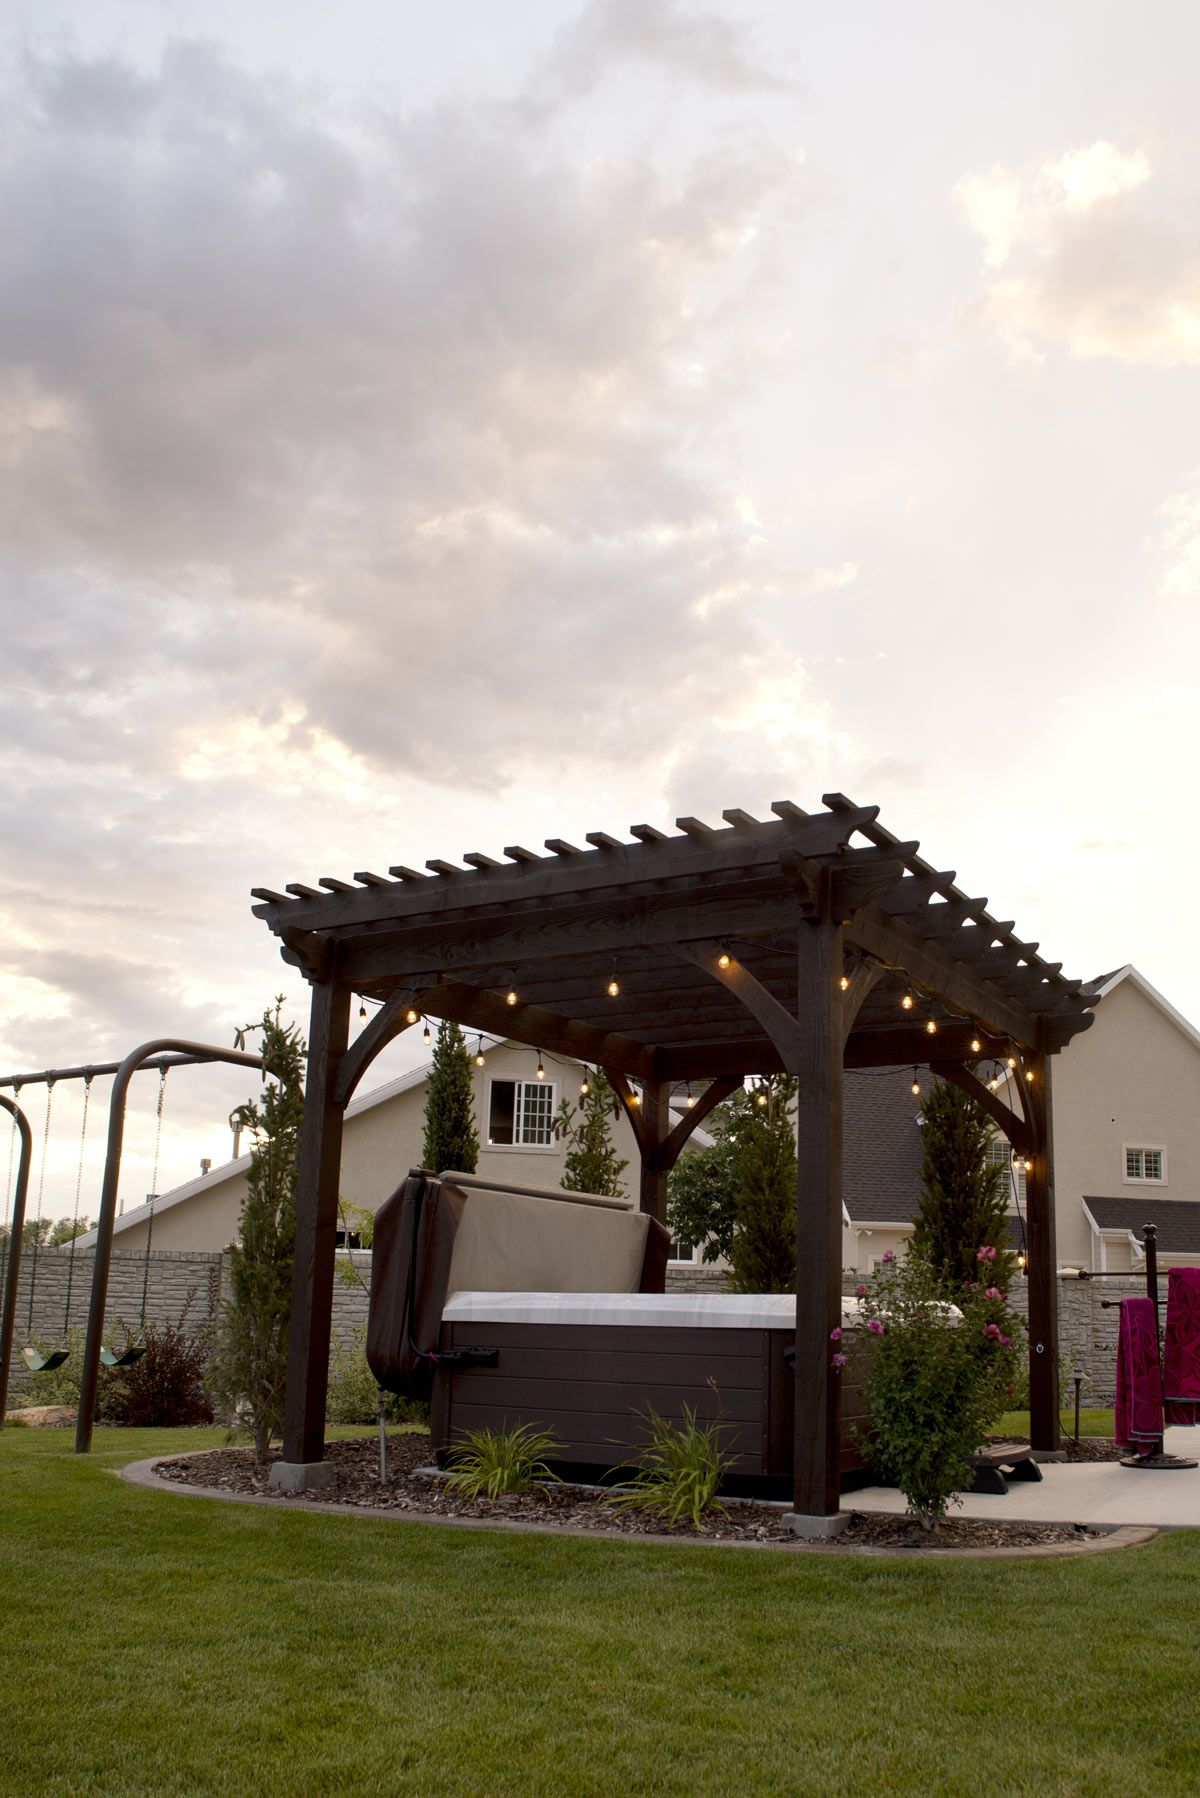 Heavenly Haven: DIY Hot Tub Pergola, Hammock Trellis